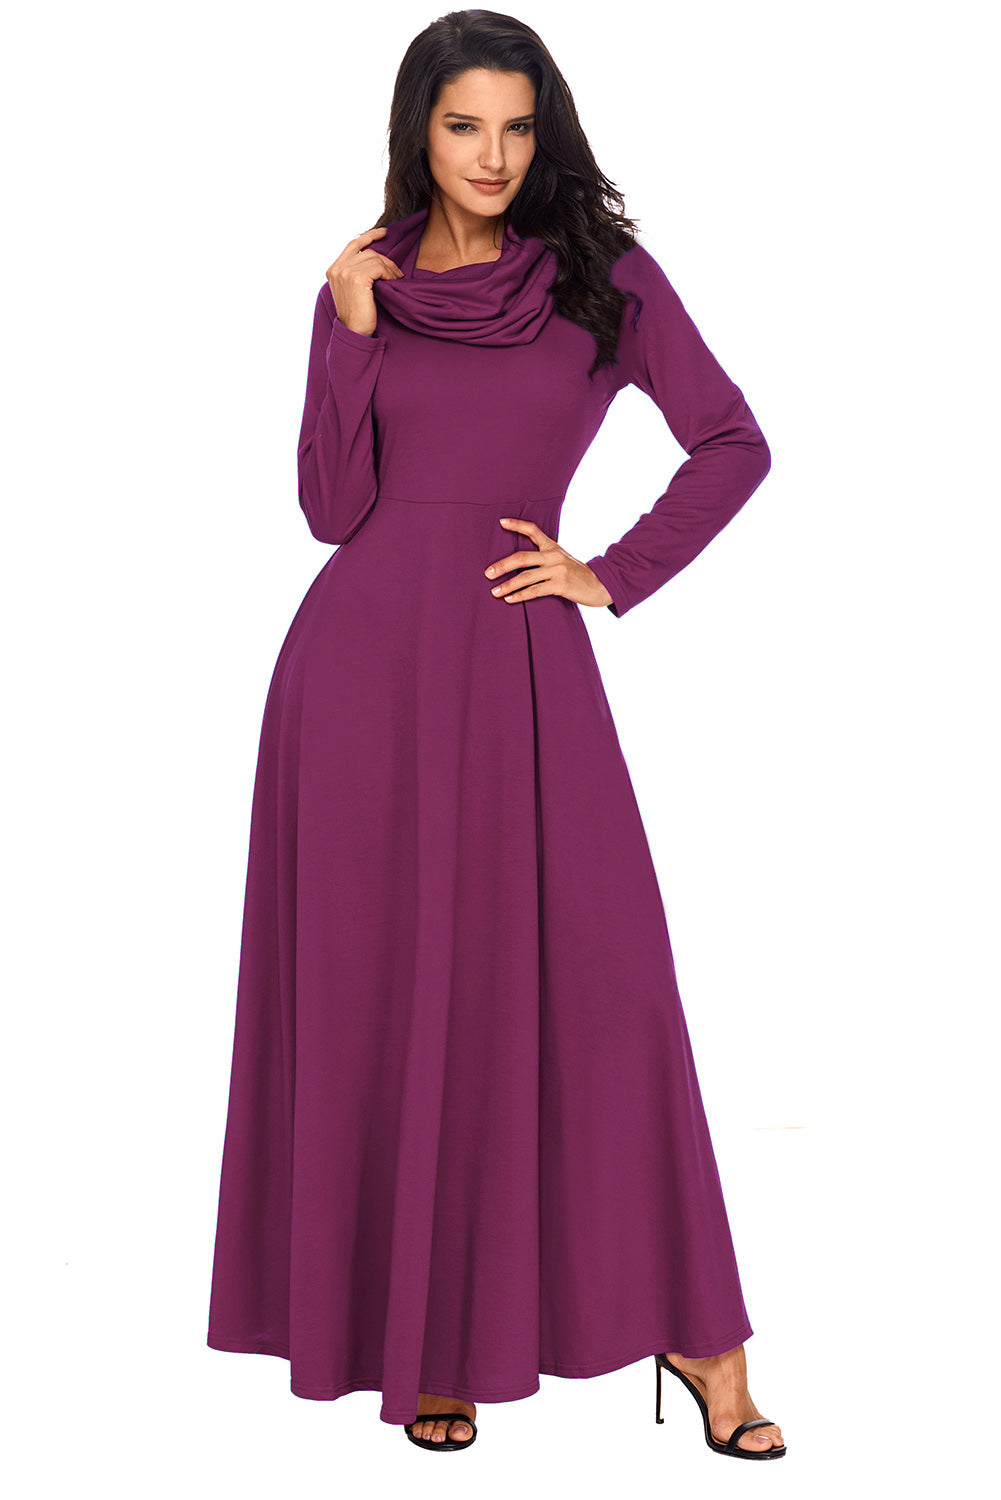 Her Fashion Purple Turtleneck Neck Long Sleeve Trendy Maxi Dress